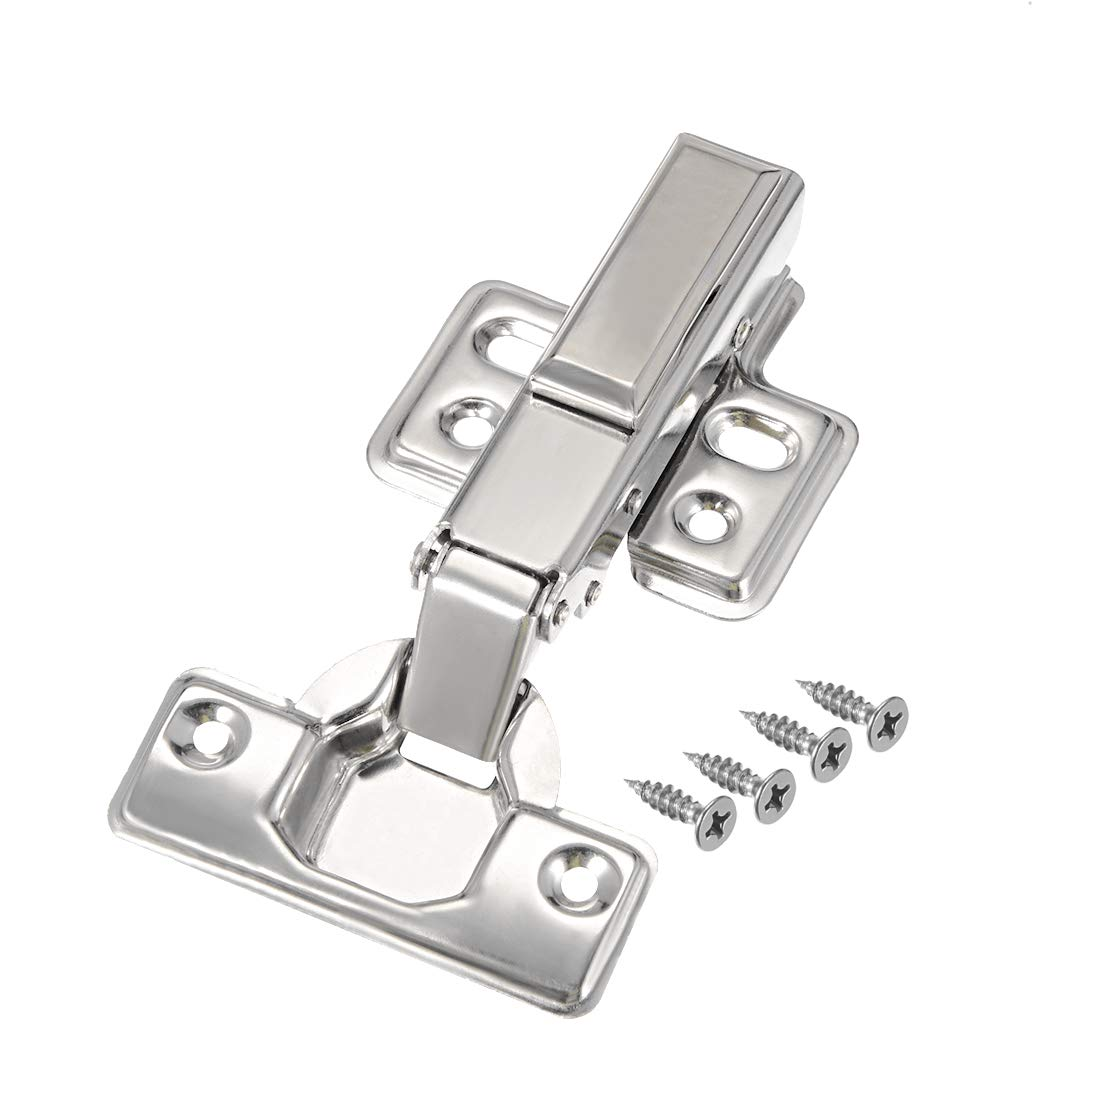 uxcell 201 Stainless Steel Removable Face Frame Concealed Cabinet Full Overlay Door Hinges w Cover